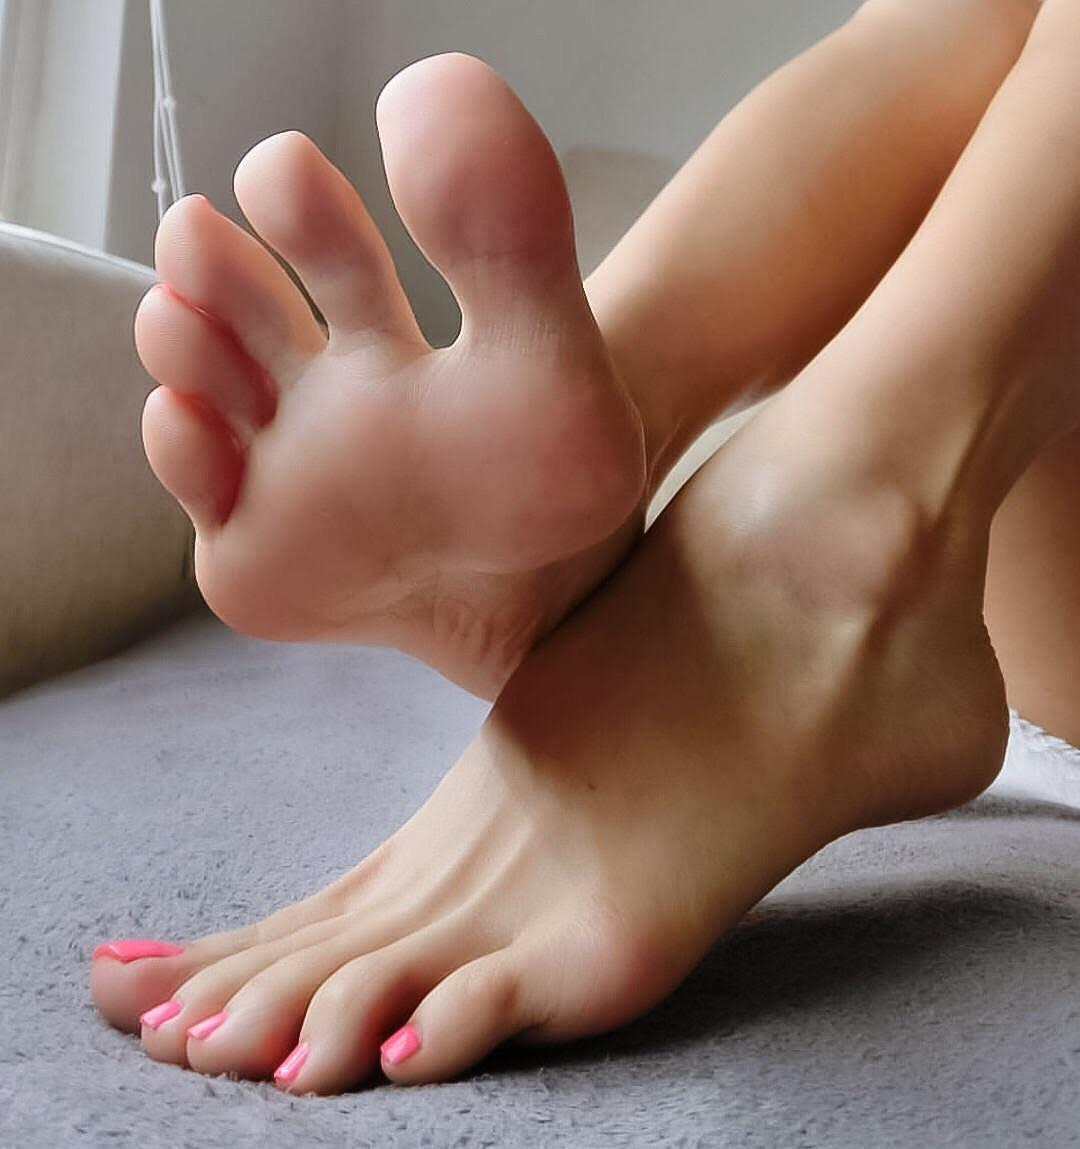 Young nude feet